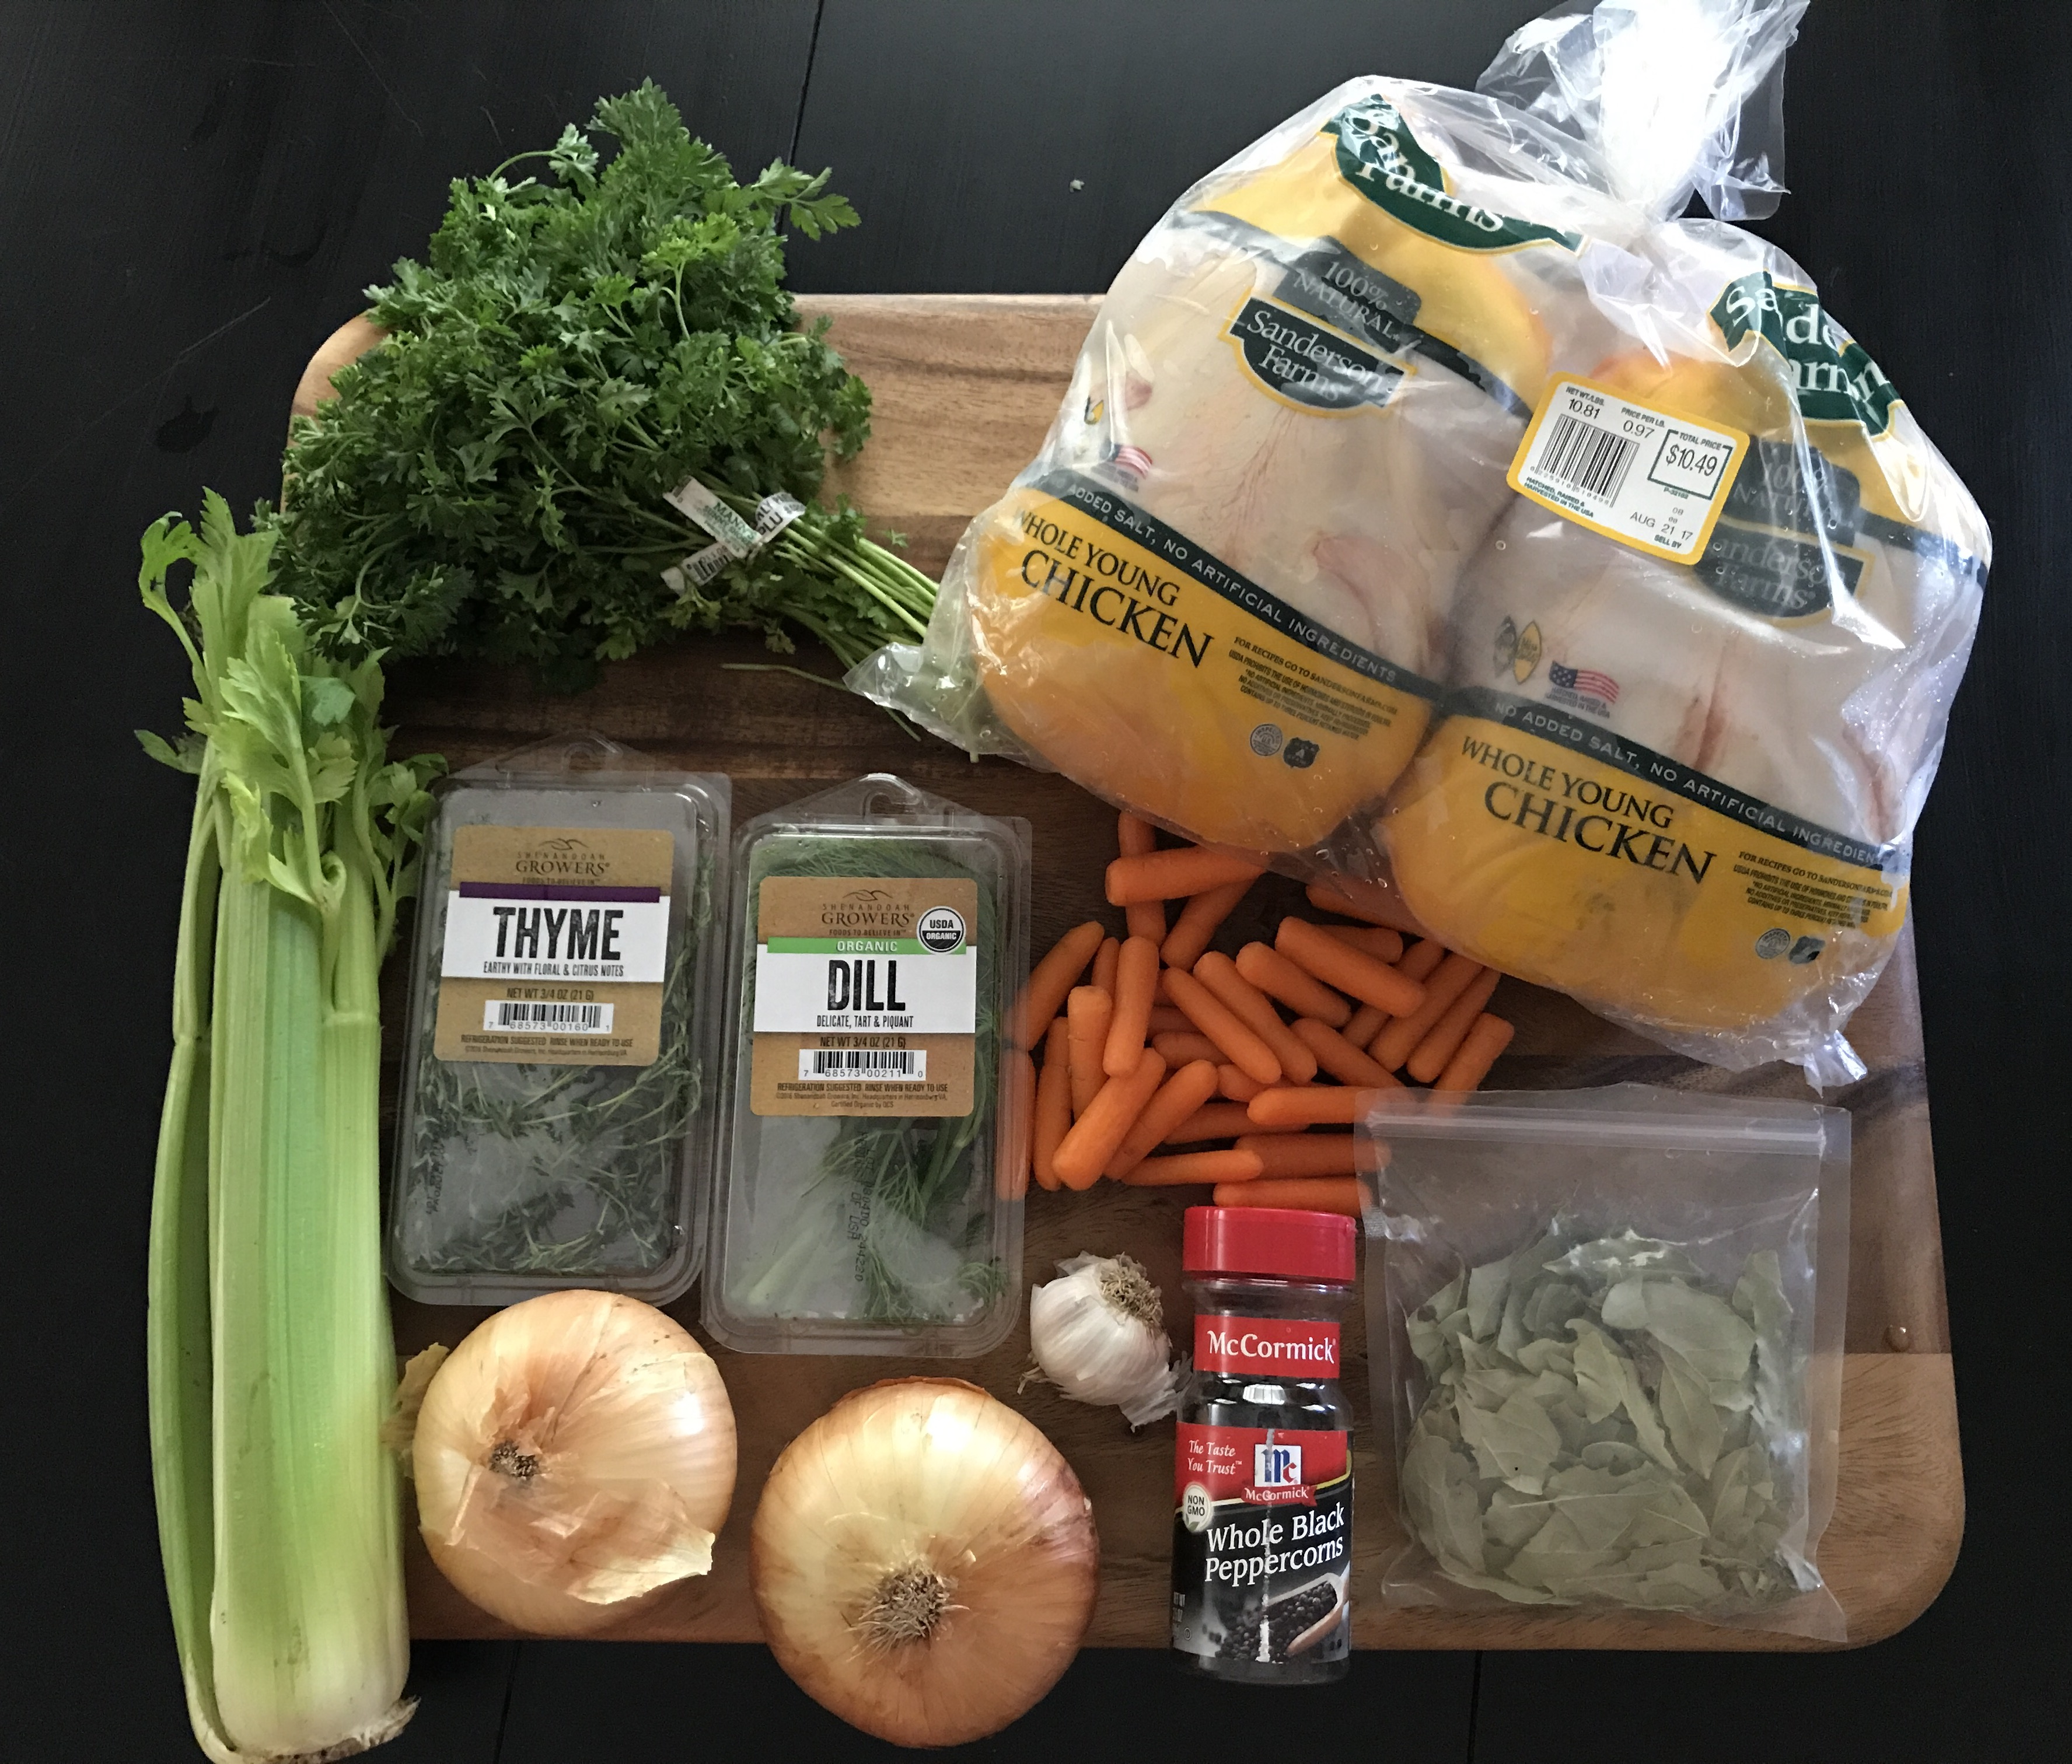 Ingredients for homemade chicken broth on a cutting board: chickens, parsley, onion, garlic, carrots, celery, dill, thyme, bay leaves, peppercorns